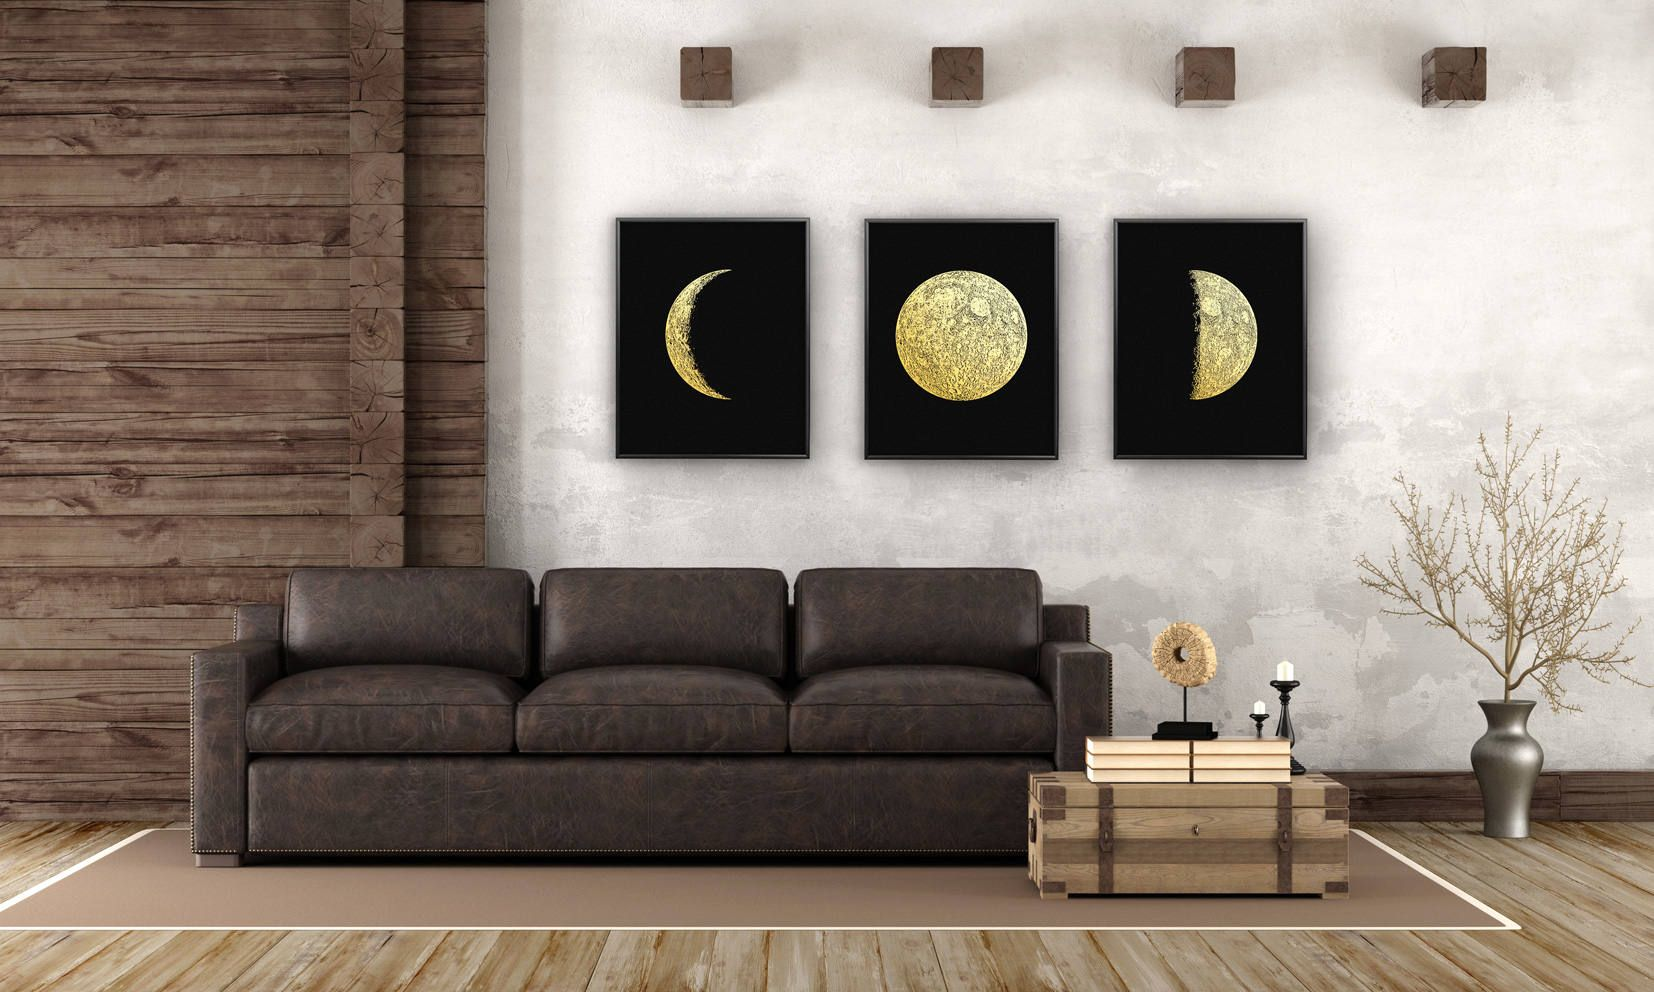 Moon Phases Real Gold Foil set of 3 Large Print up to 16